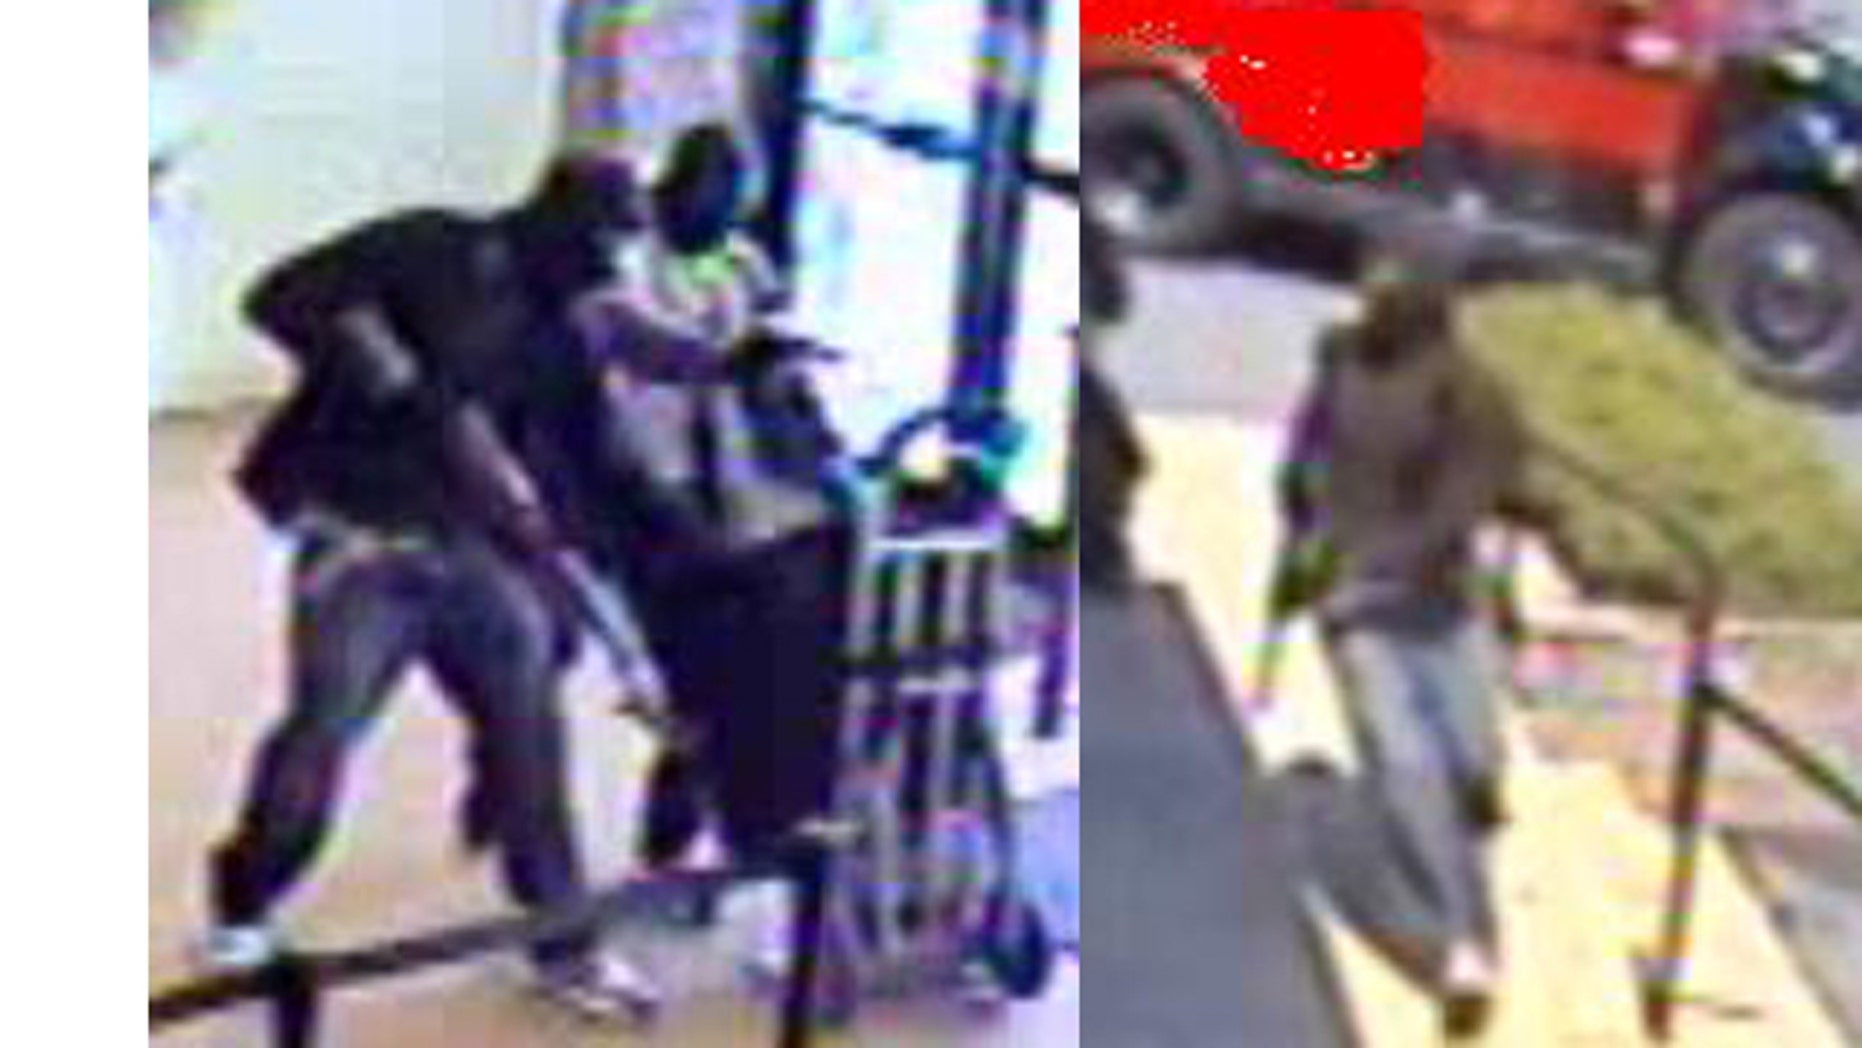 Anyone with information is urged to call the Prince George's County Police Department's Robbery Unit at 301-772-4905